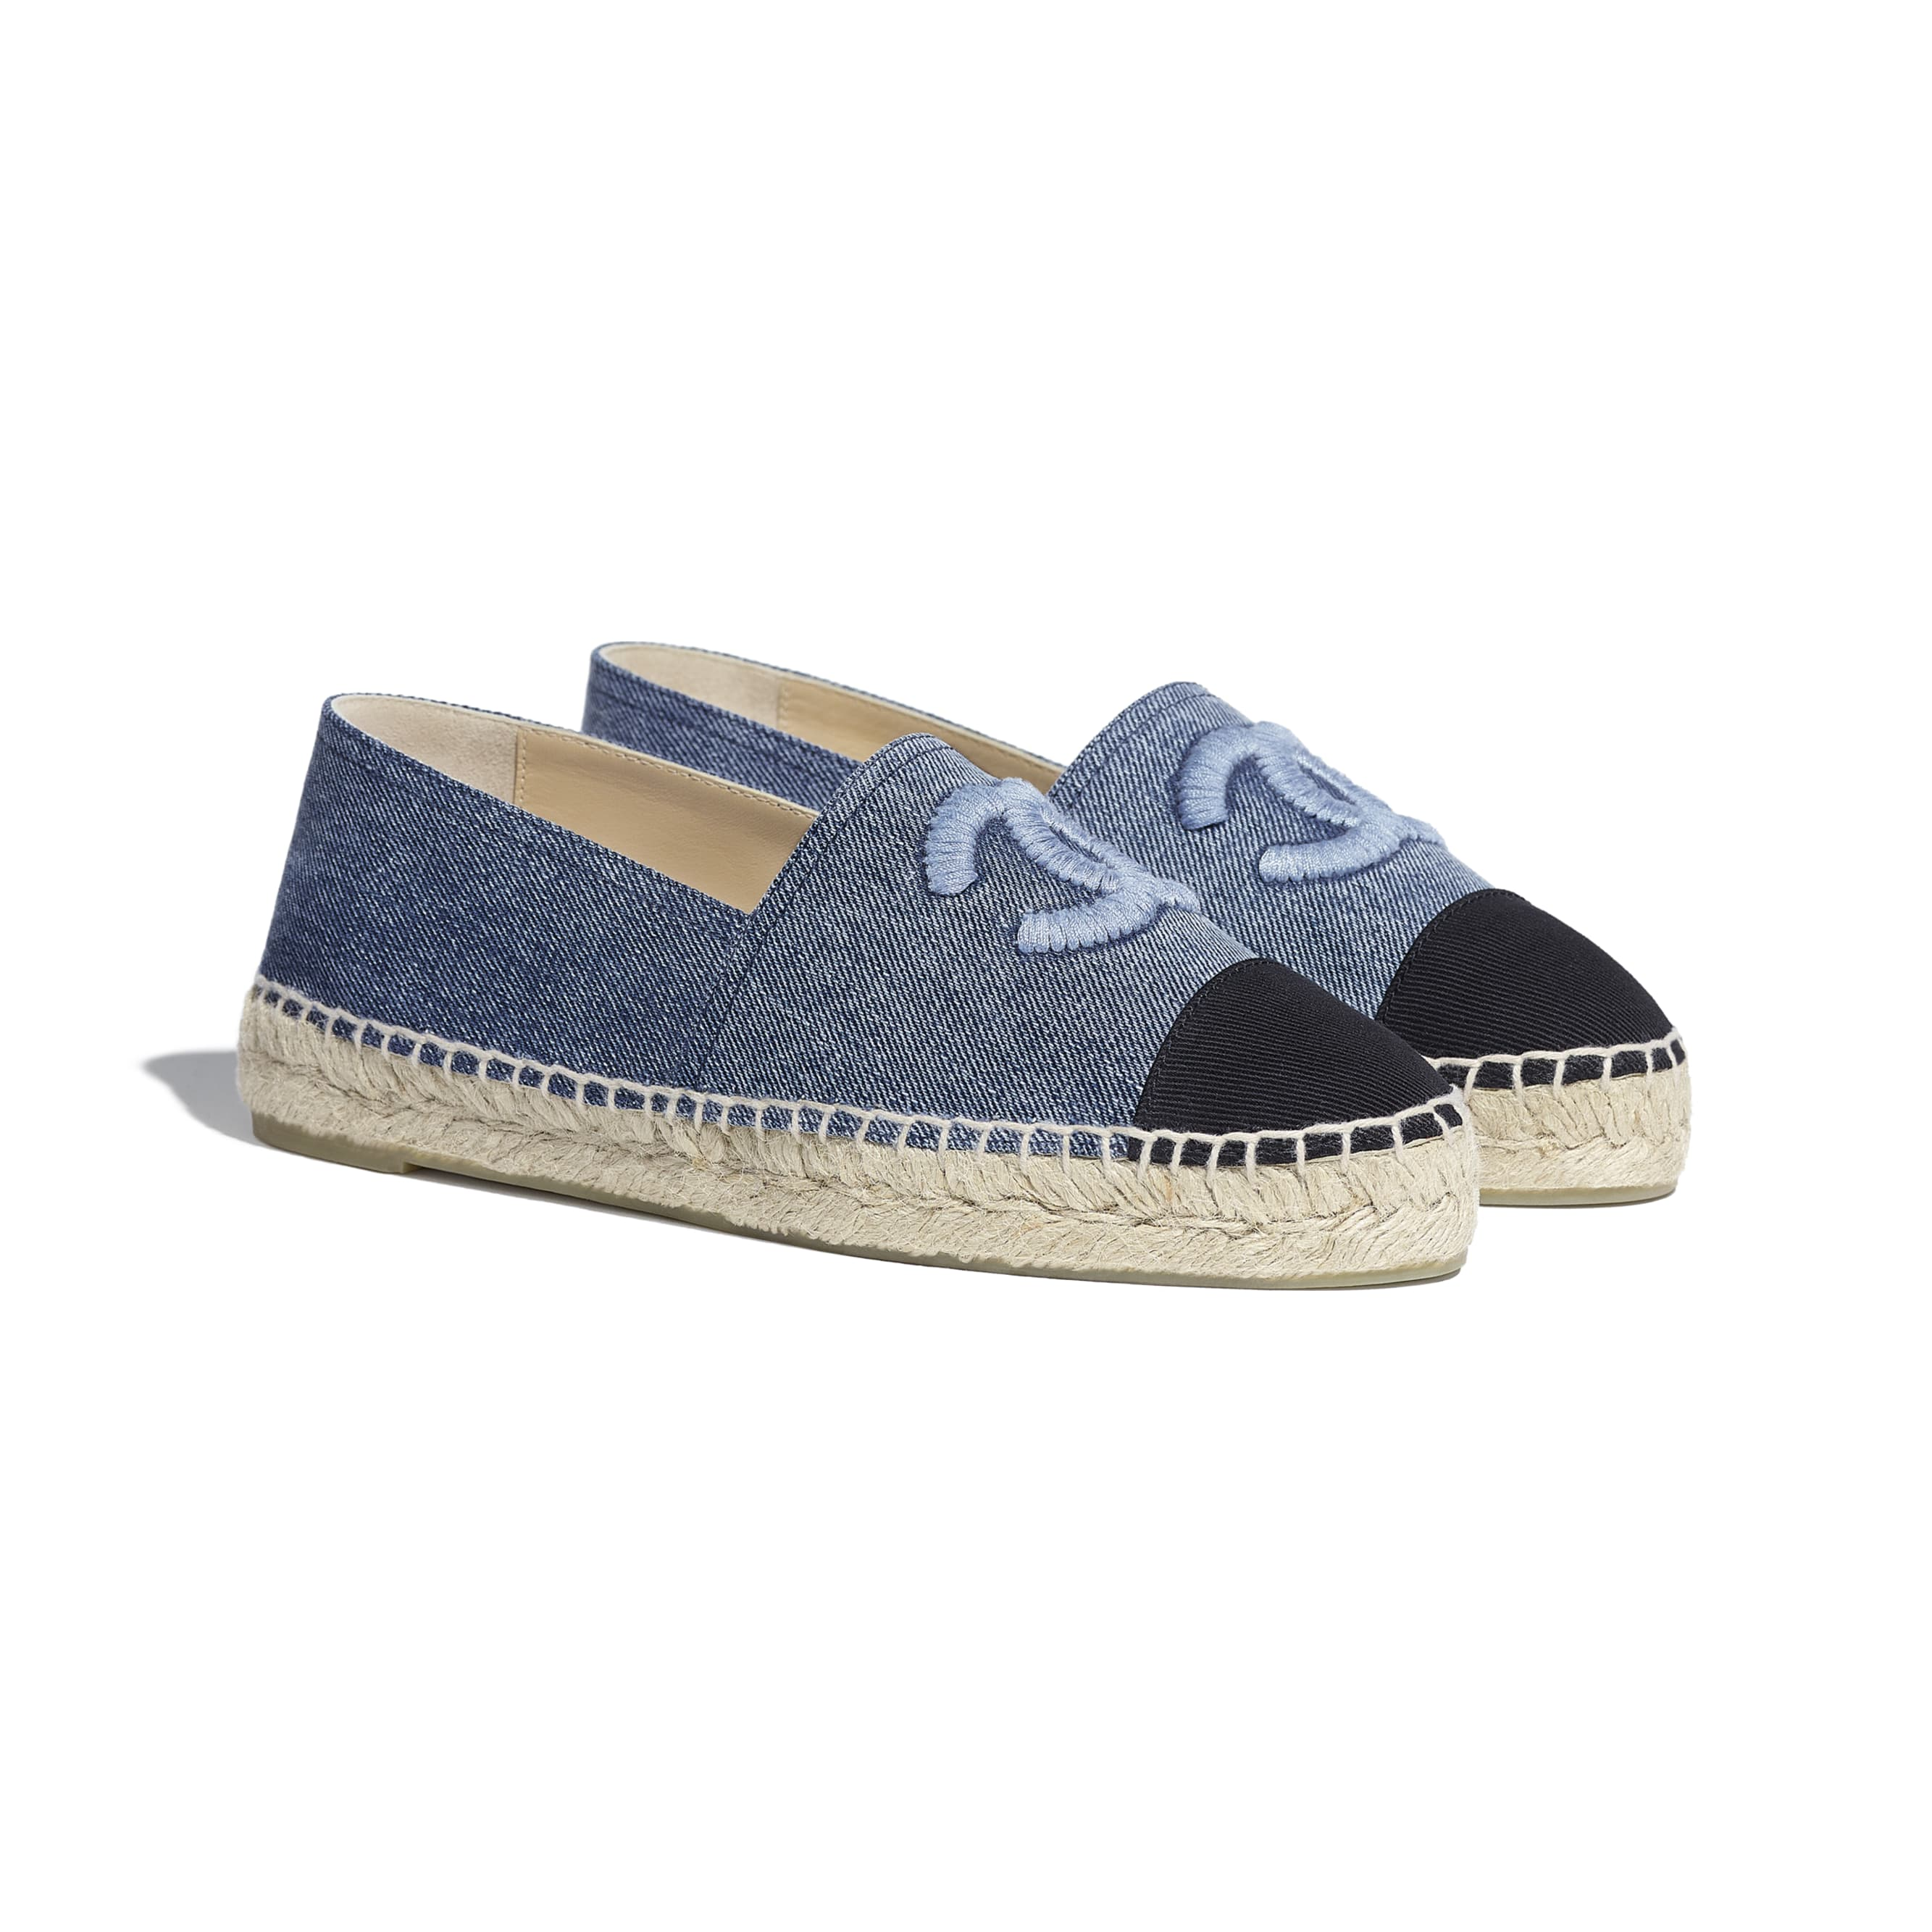 Espadrilles - Blue & Black - Denim - CHANEL - Alternative view - see standard sized version